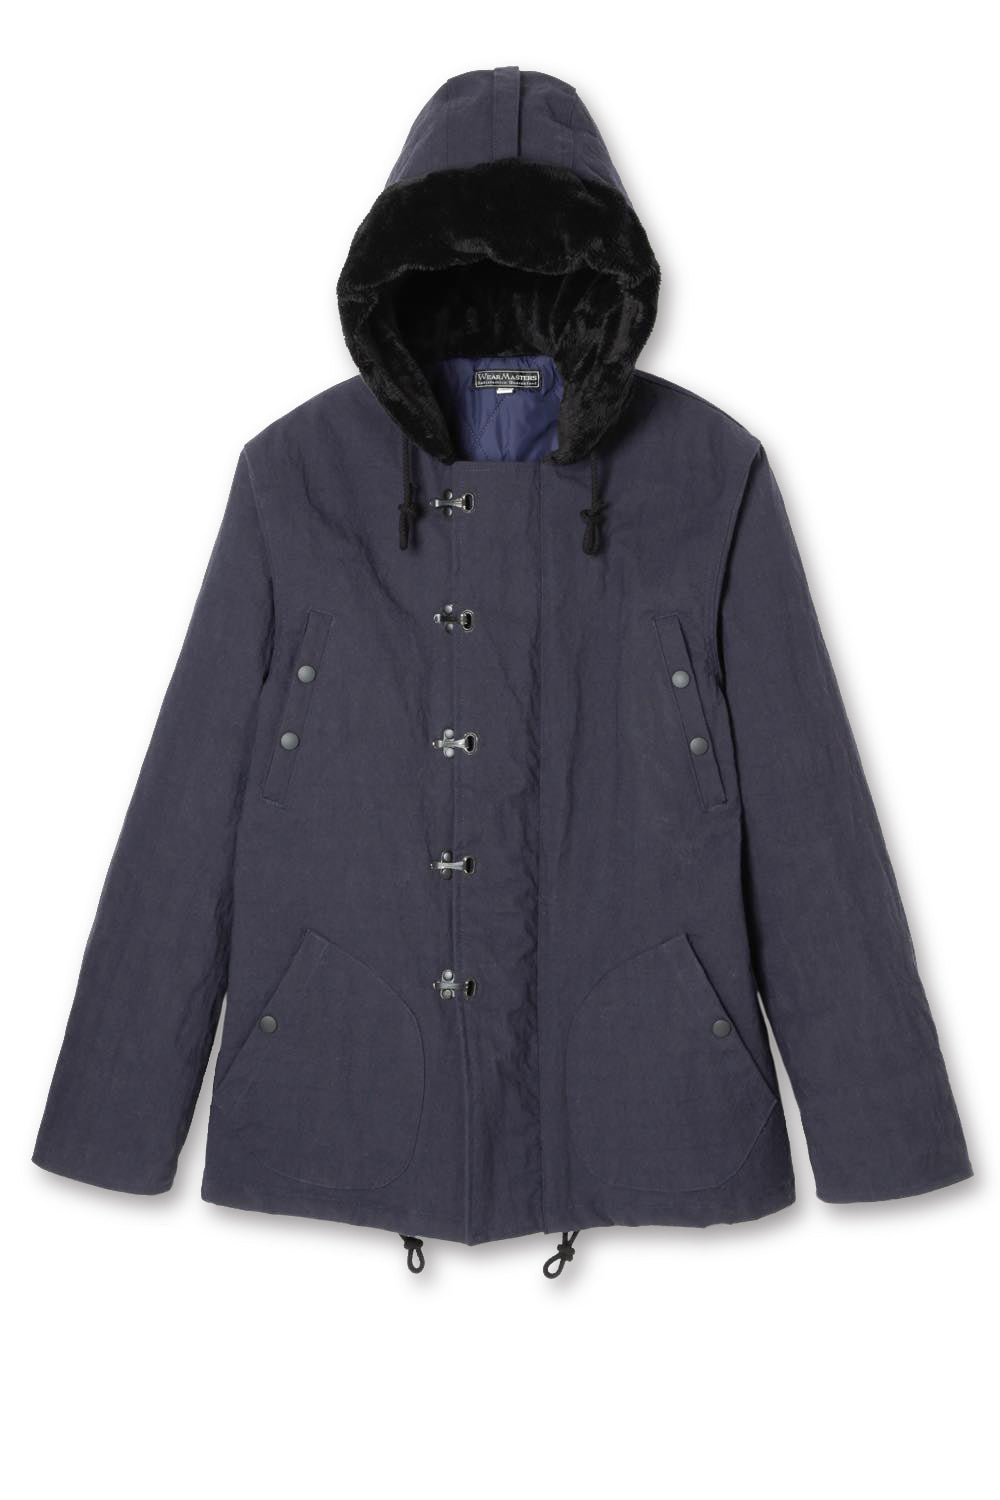 Lot.644 Nylon Hoodie Hook Jacket -Navy-